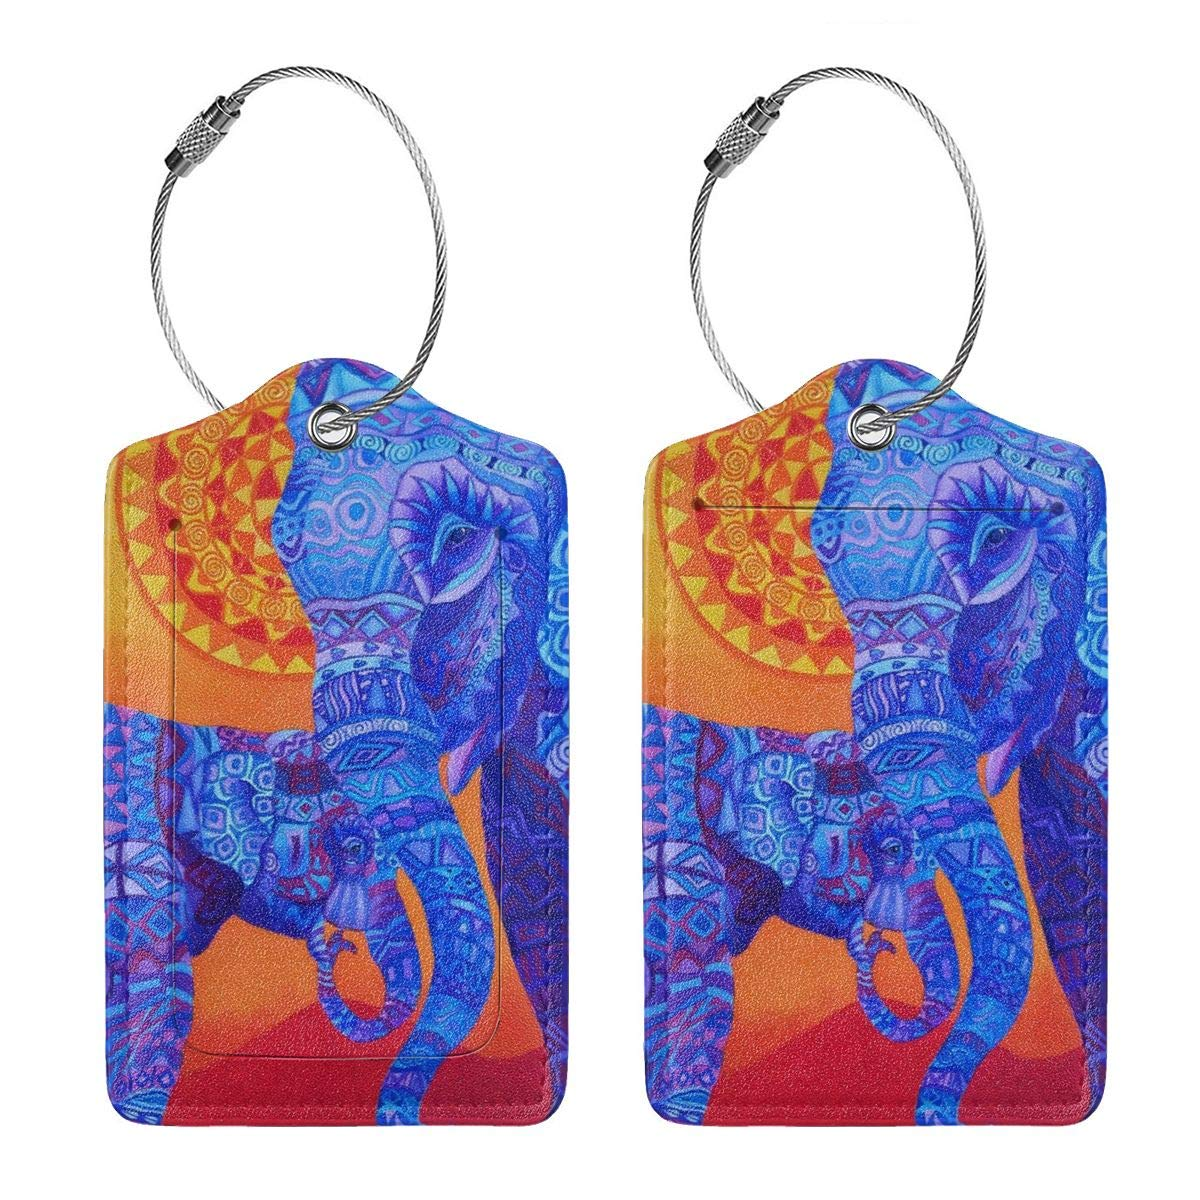 Godzigod Luggage Tags PU Leather Suitcase Card Tag with Stainless Steel Loop Travel Baggage Handbag Tag Labels Travel Accessories Psychedelic Indian Elephant Mandala